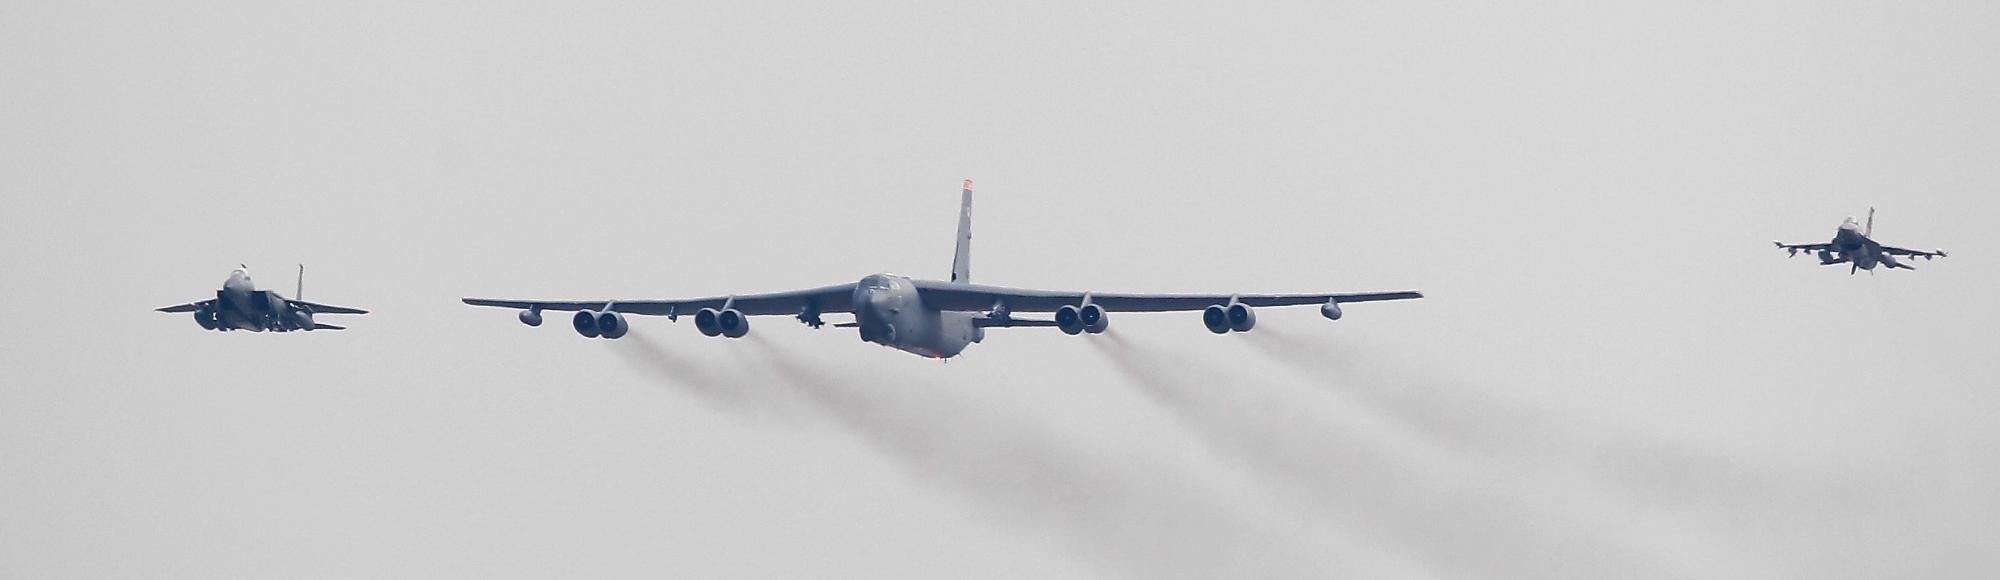 Deterrence Mission: U.S. Flies B-52 Bomber next to North Korea (Video)